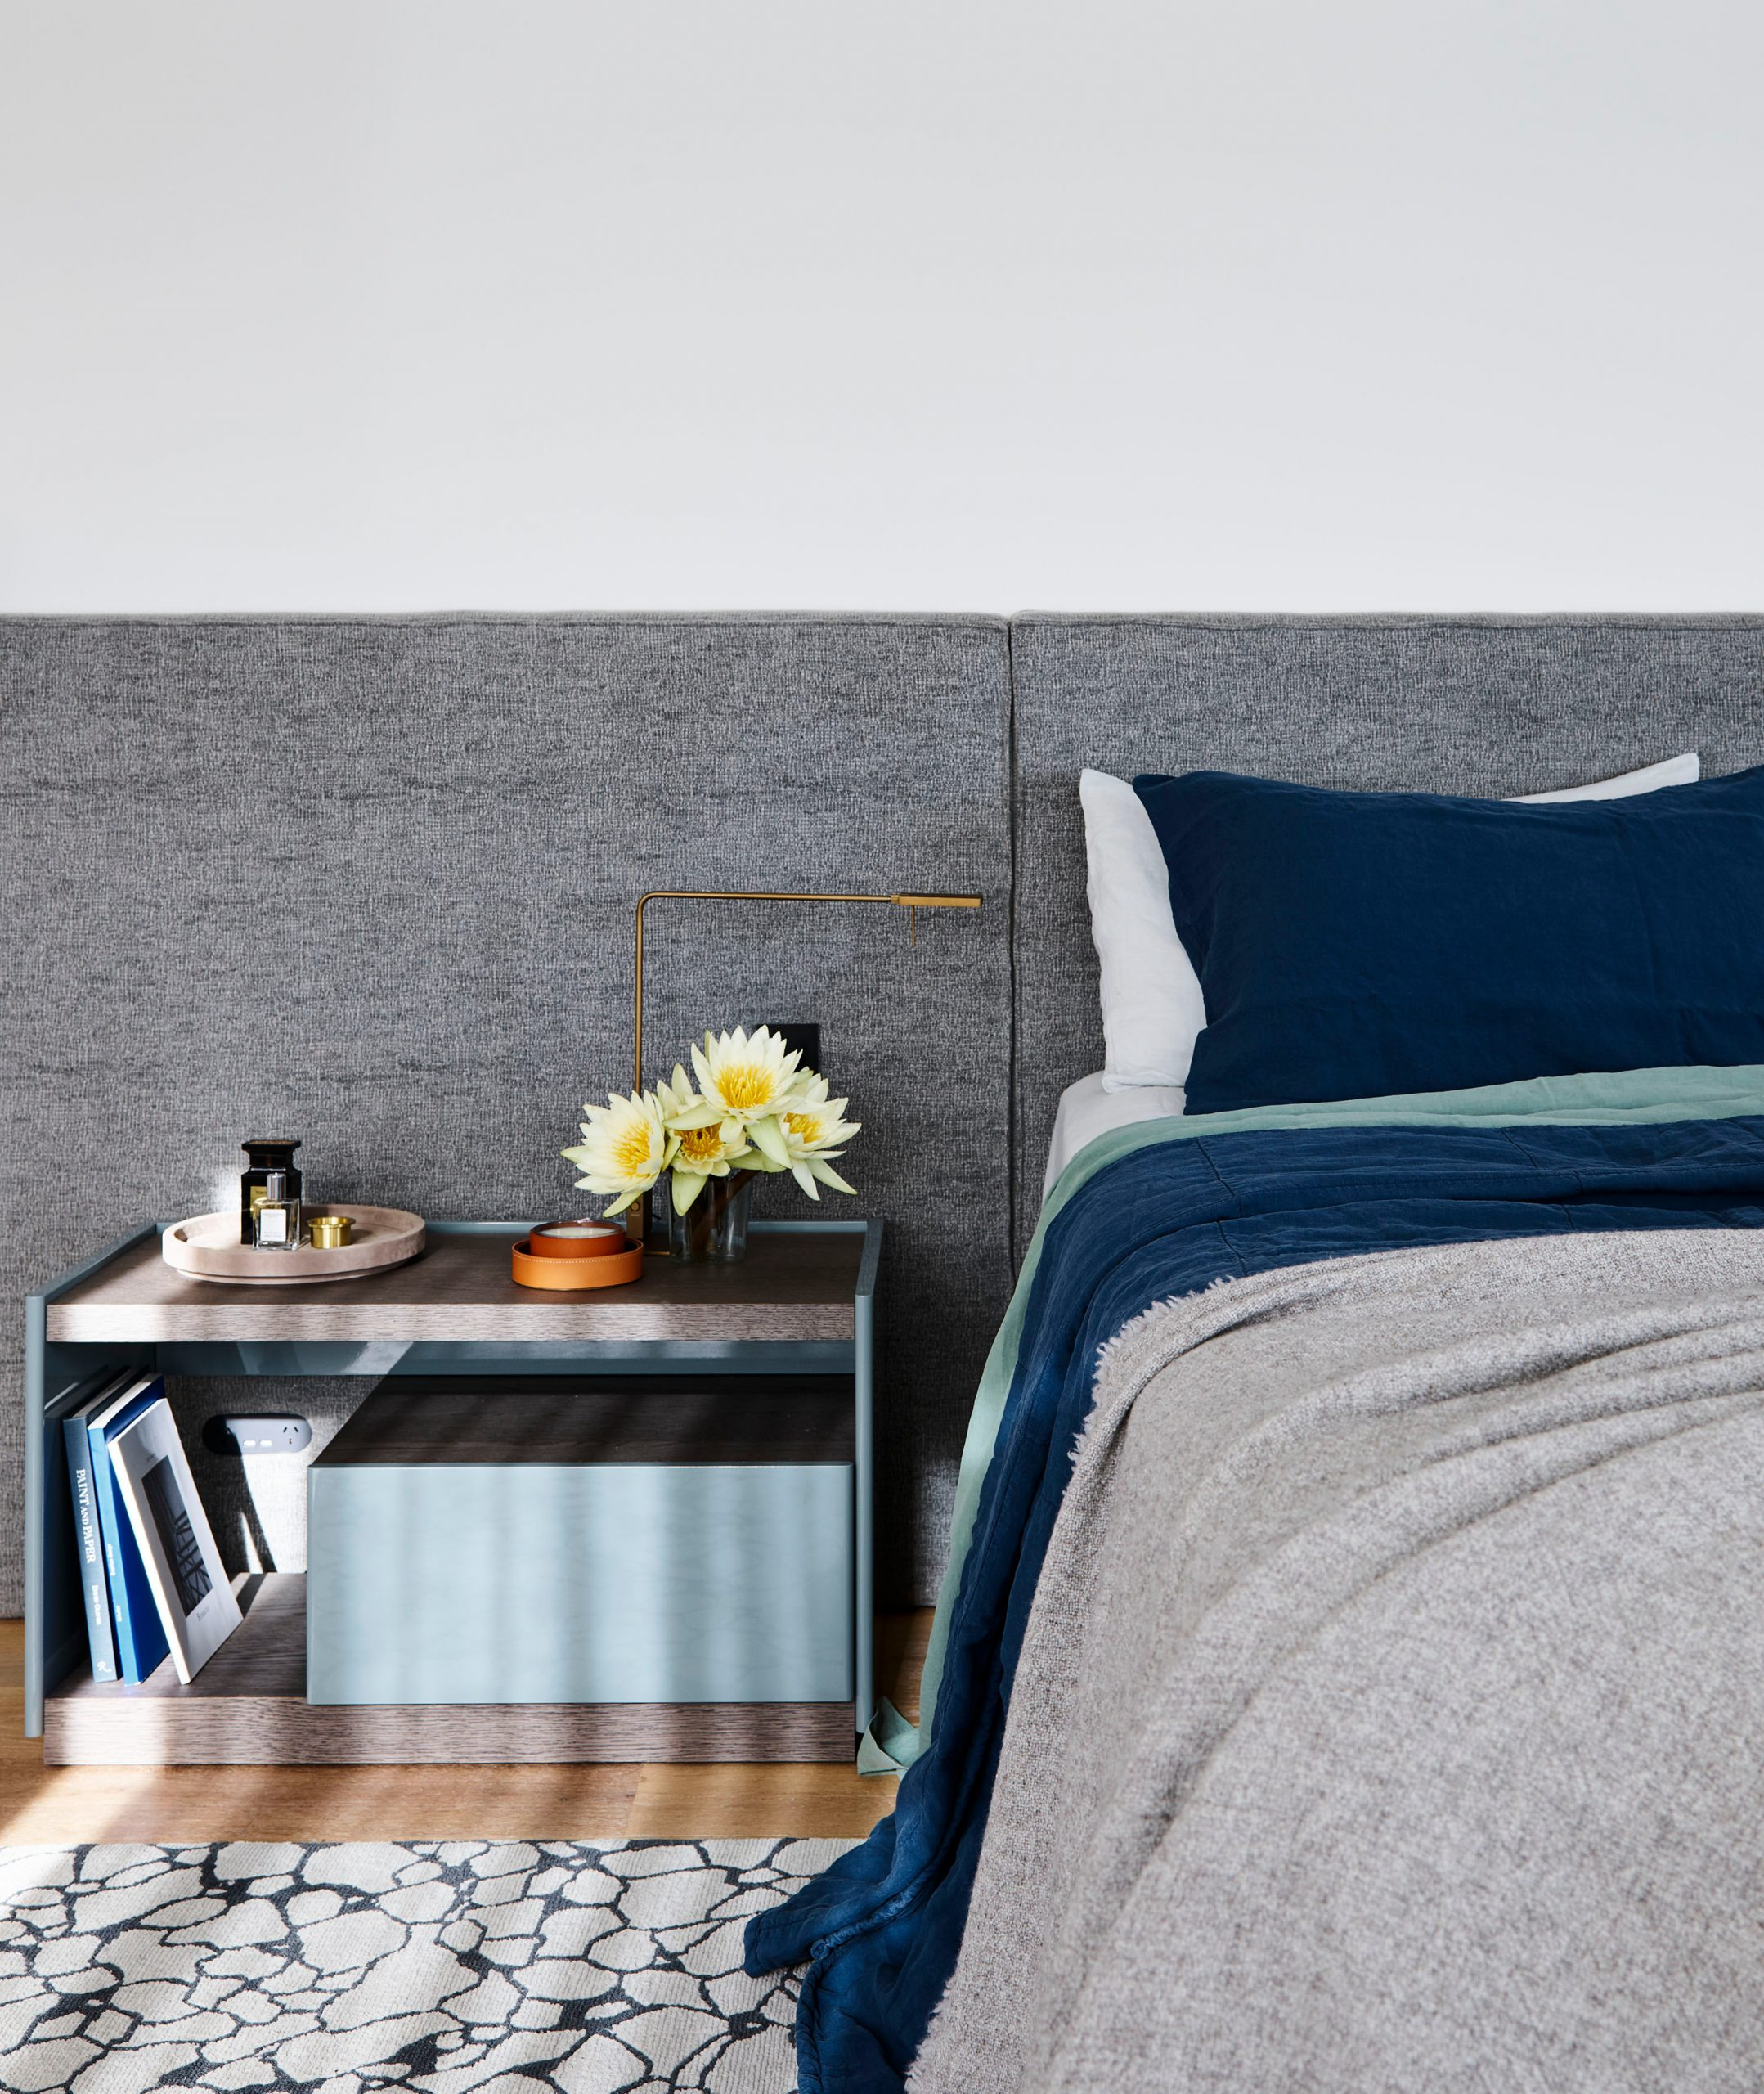 Bed & side table